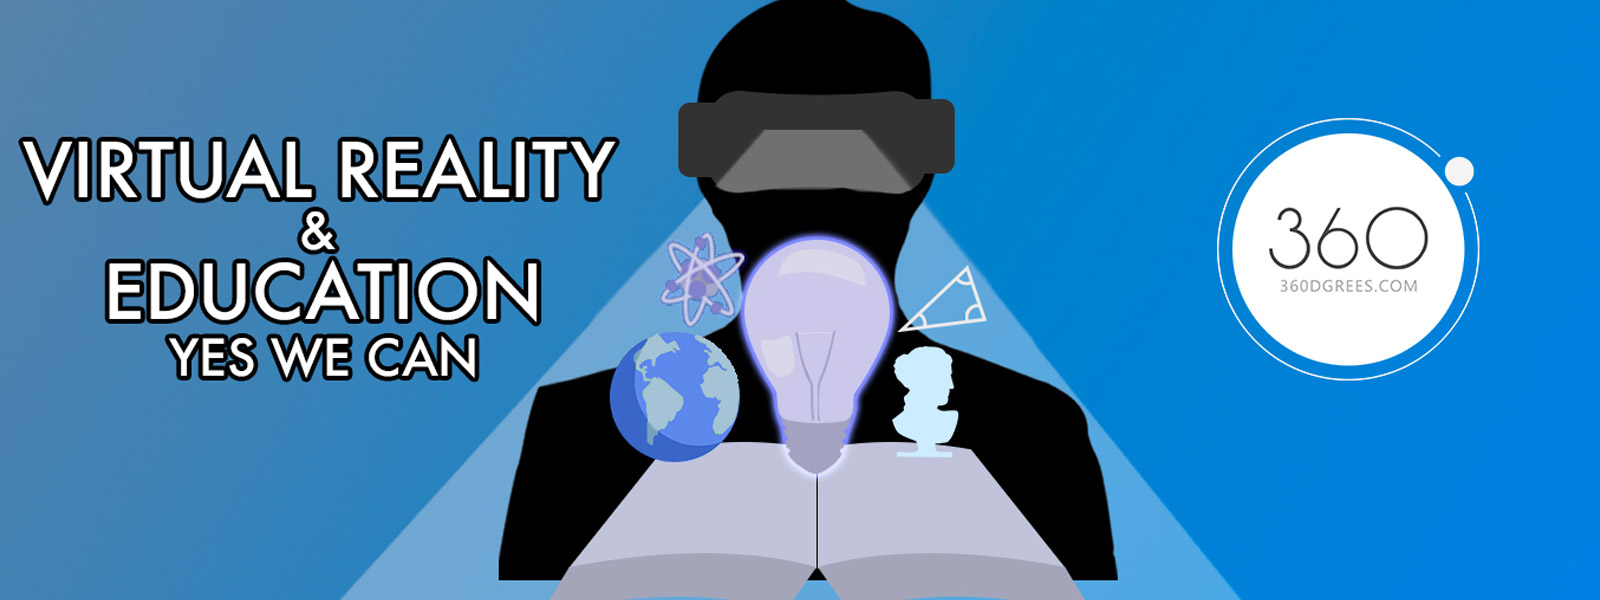 Virtual reality and education